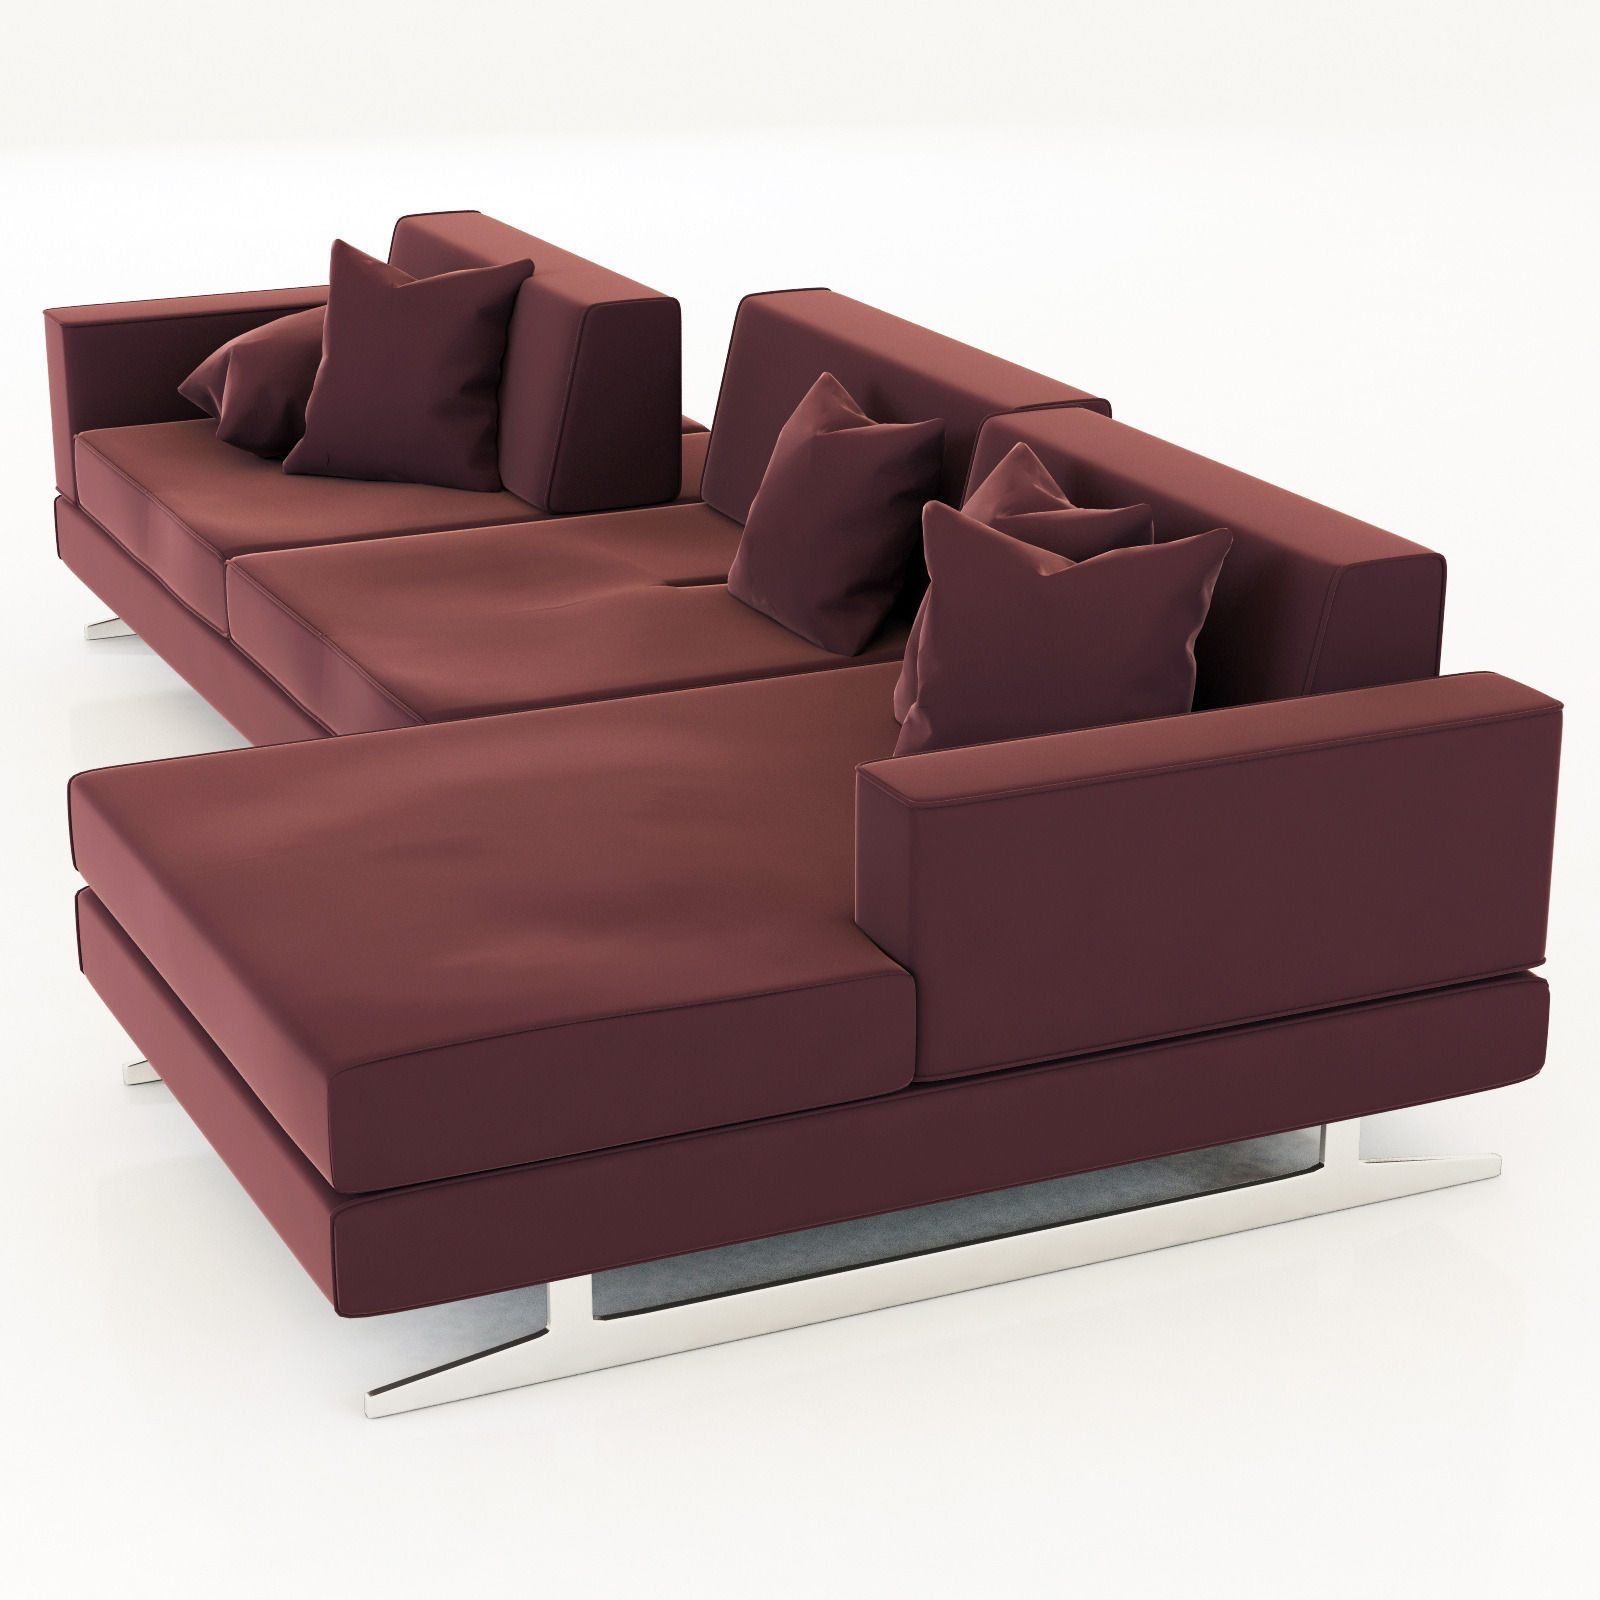 design sa to ikea bed pit sofa enjoyable your regarding furniture applied skipset movie couch residence